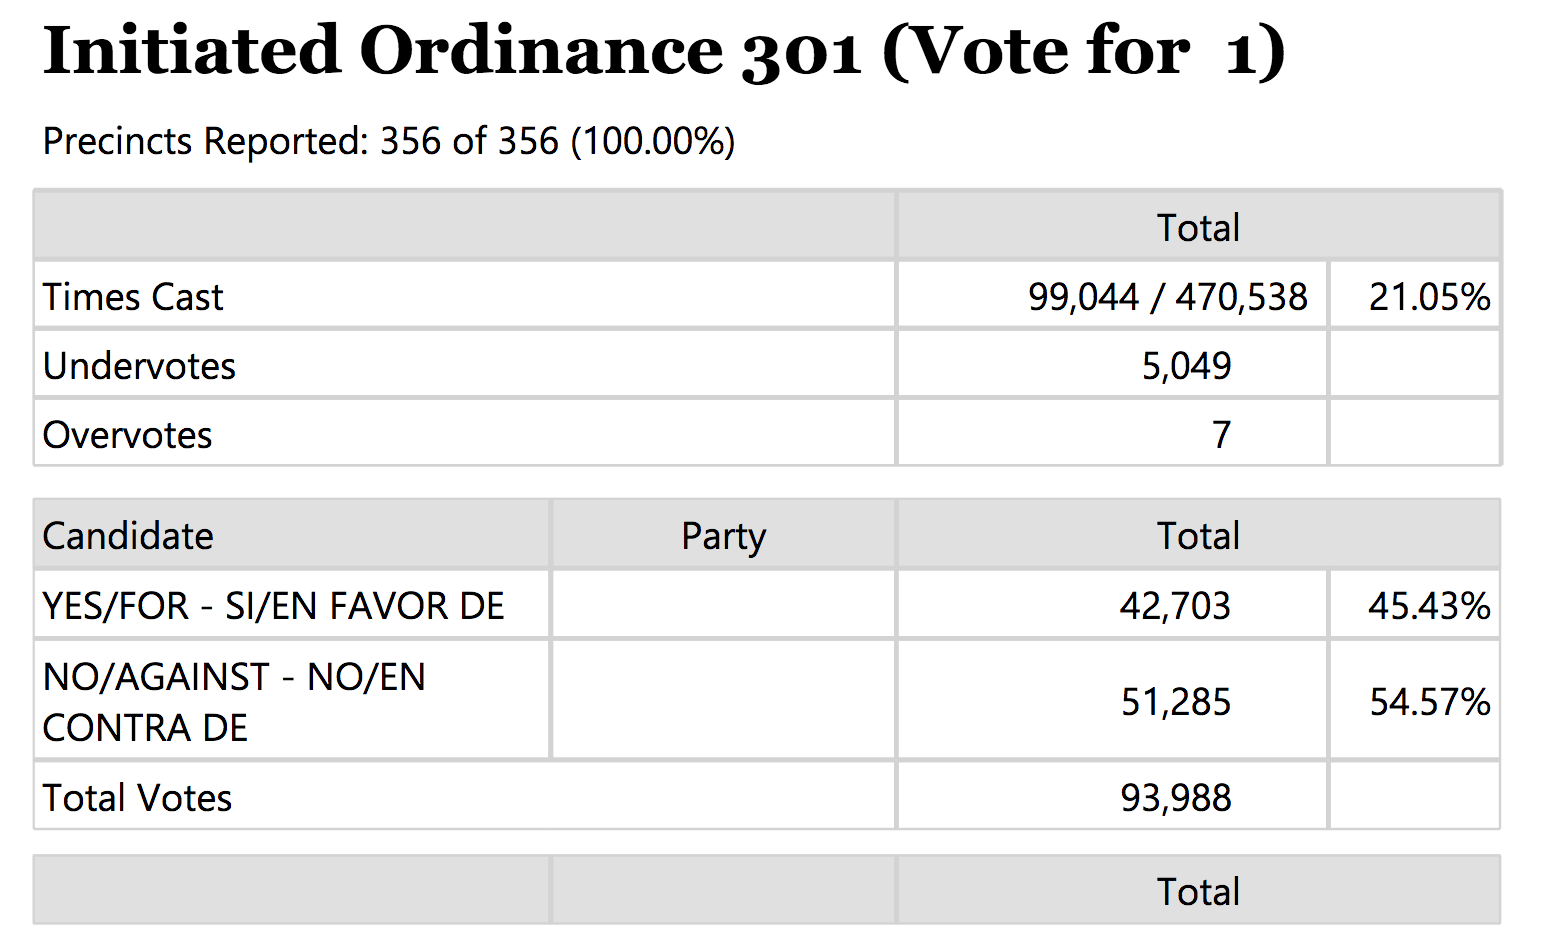 I-301 Results